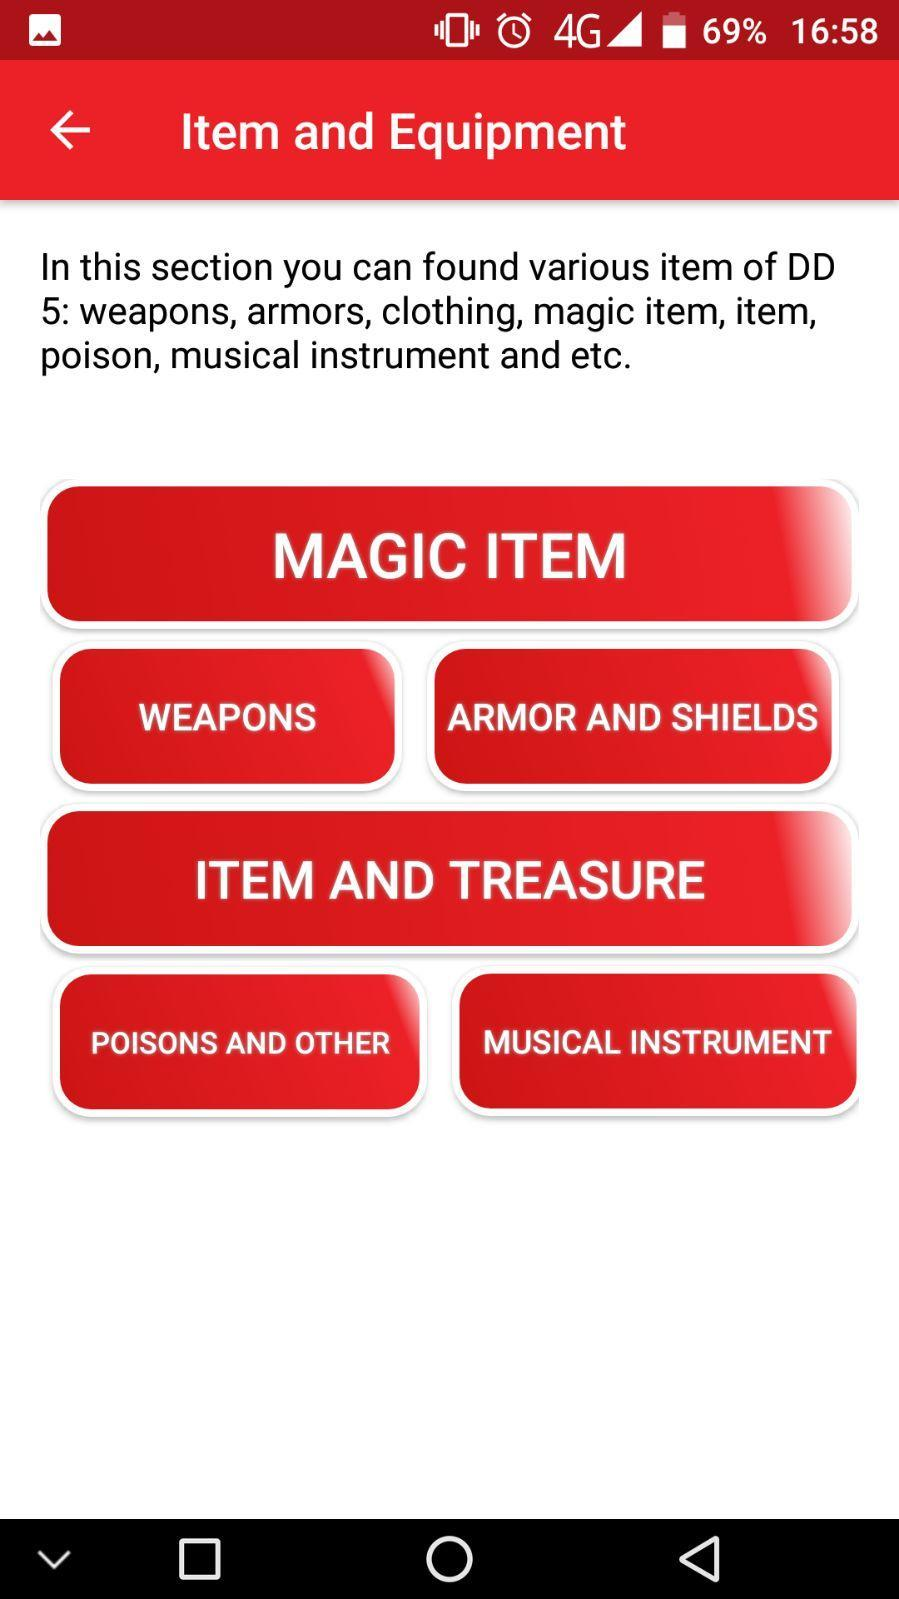 DnD 5e Database for Android - APK Download